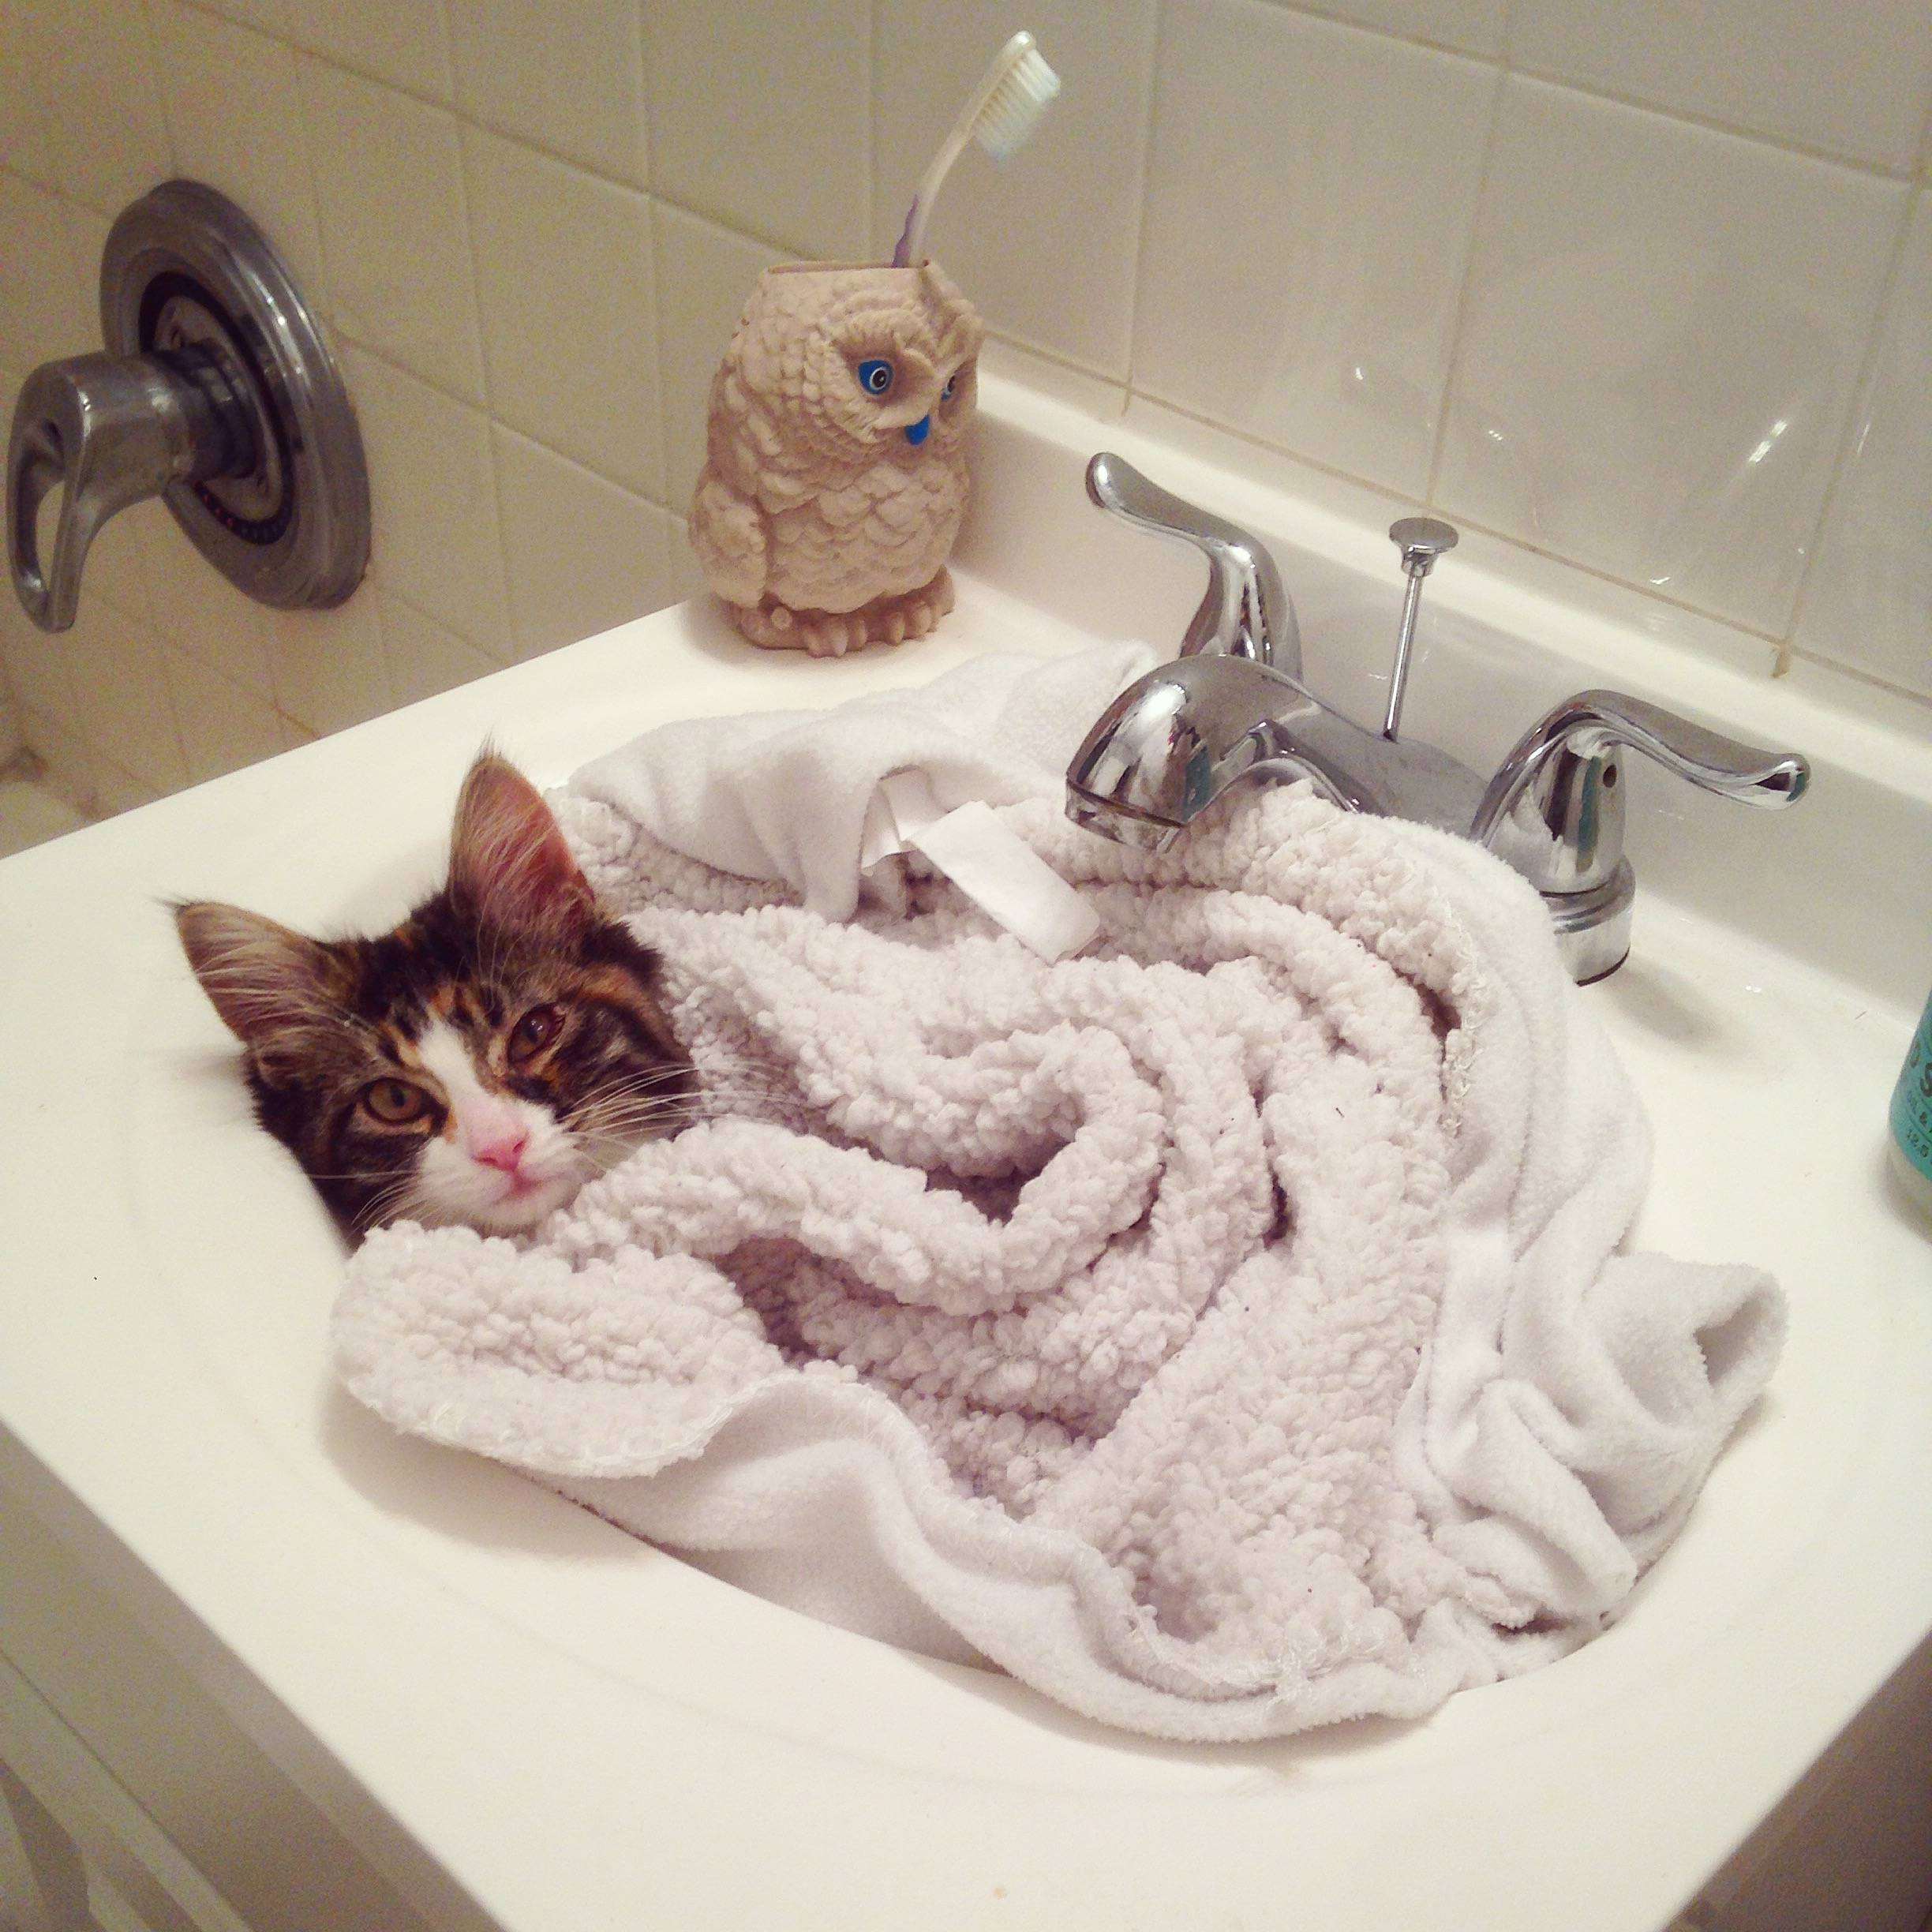 sick kitty in sink bed